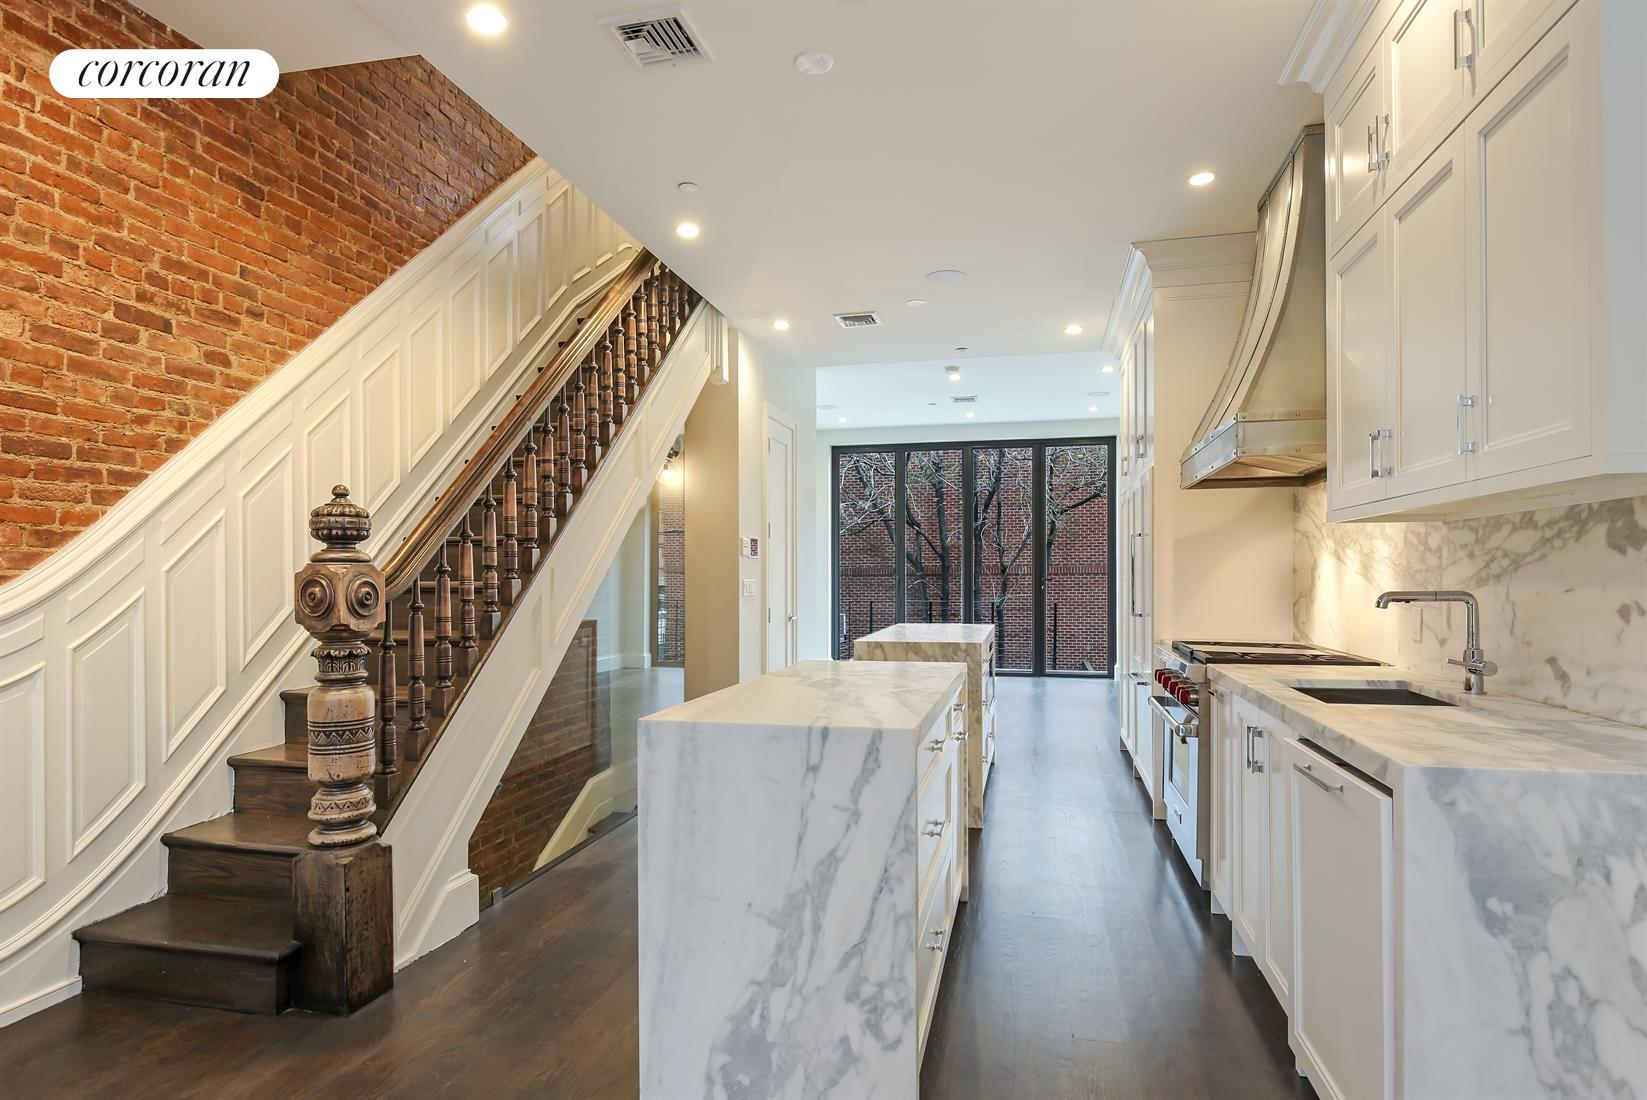 Corcoran 109 west 132nd street harlem real estate for Townhouses for sale in harlem